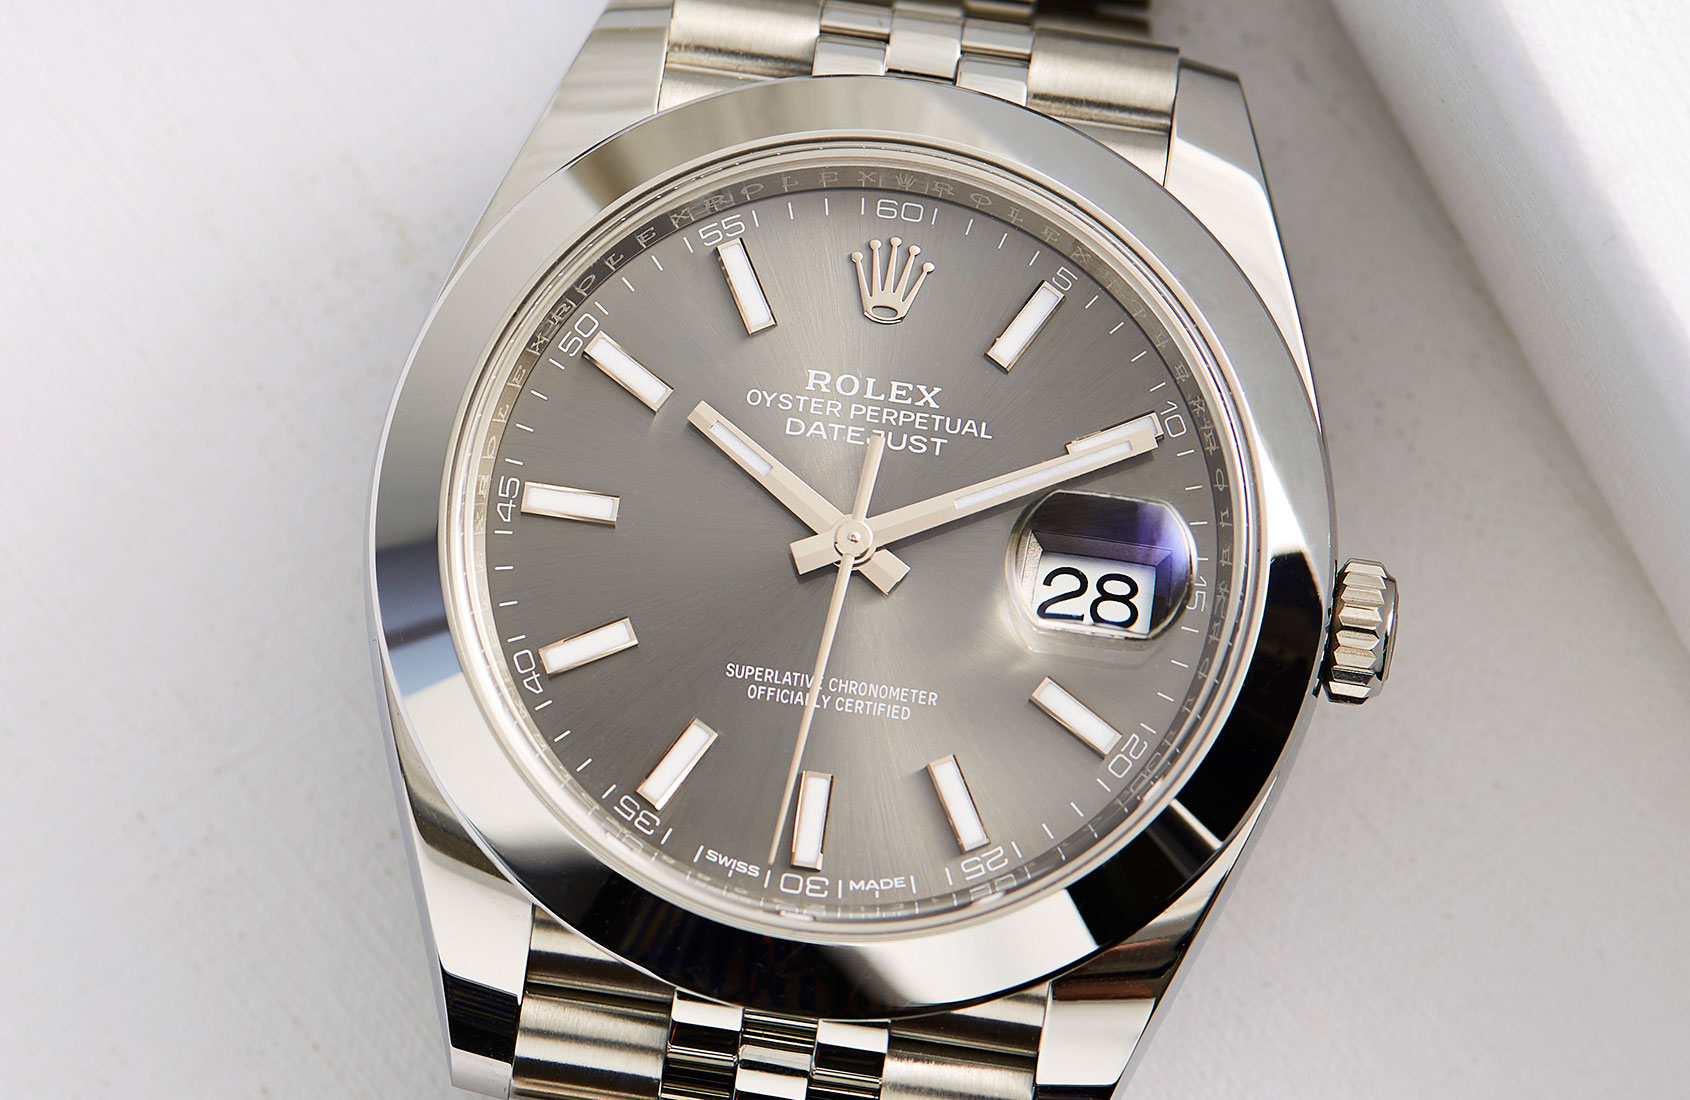 Simply the best? The Rolex Oyster Perpetual Datejust 41 in steel